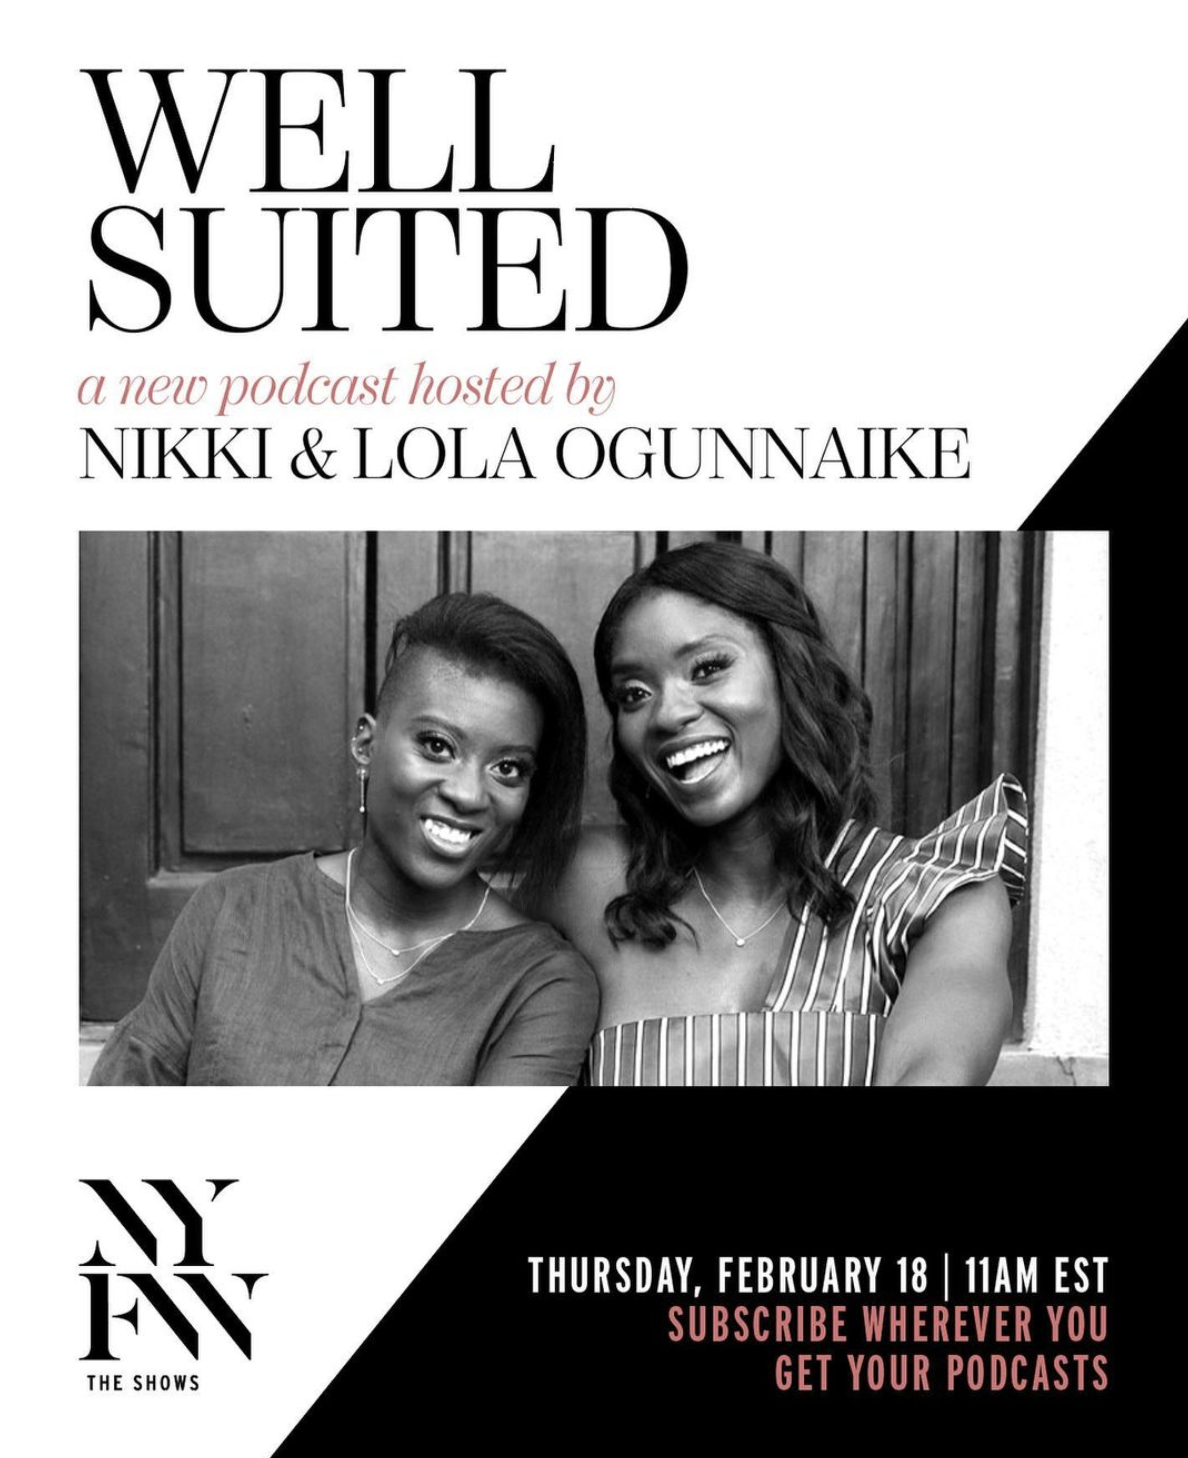 Well Suited, by Nikki and Lola Ogunnaike